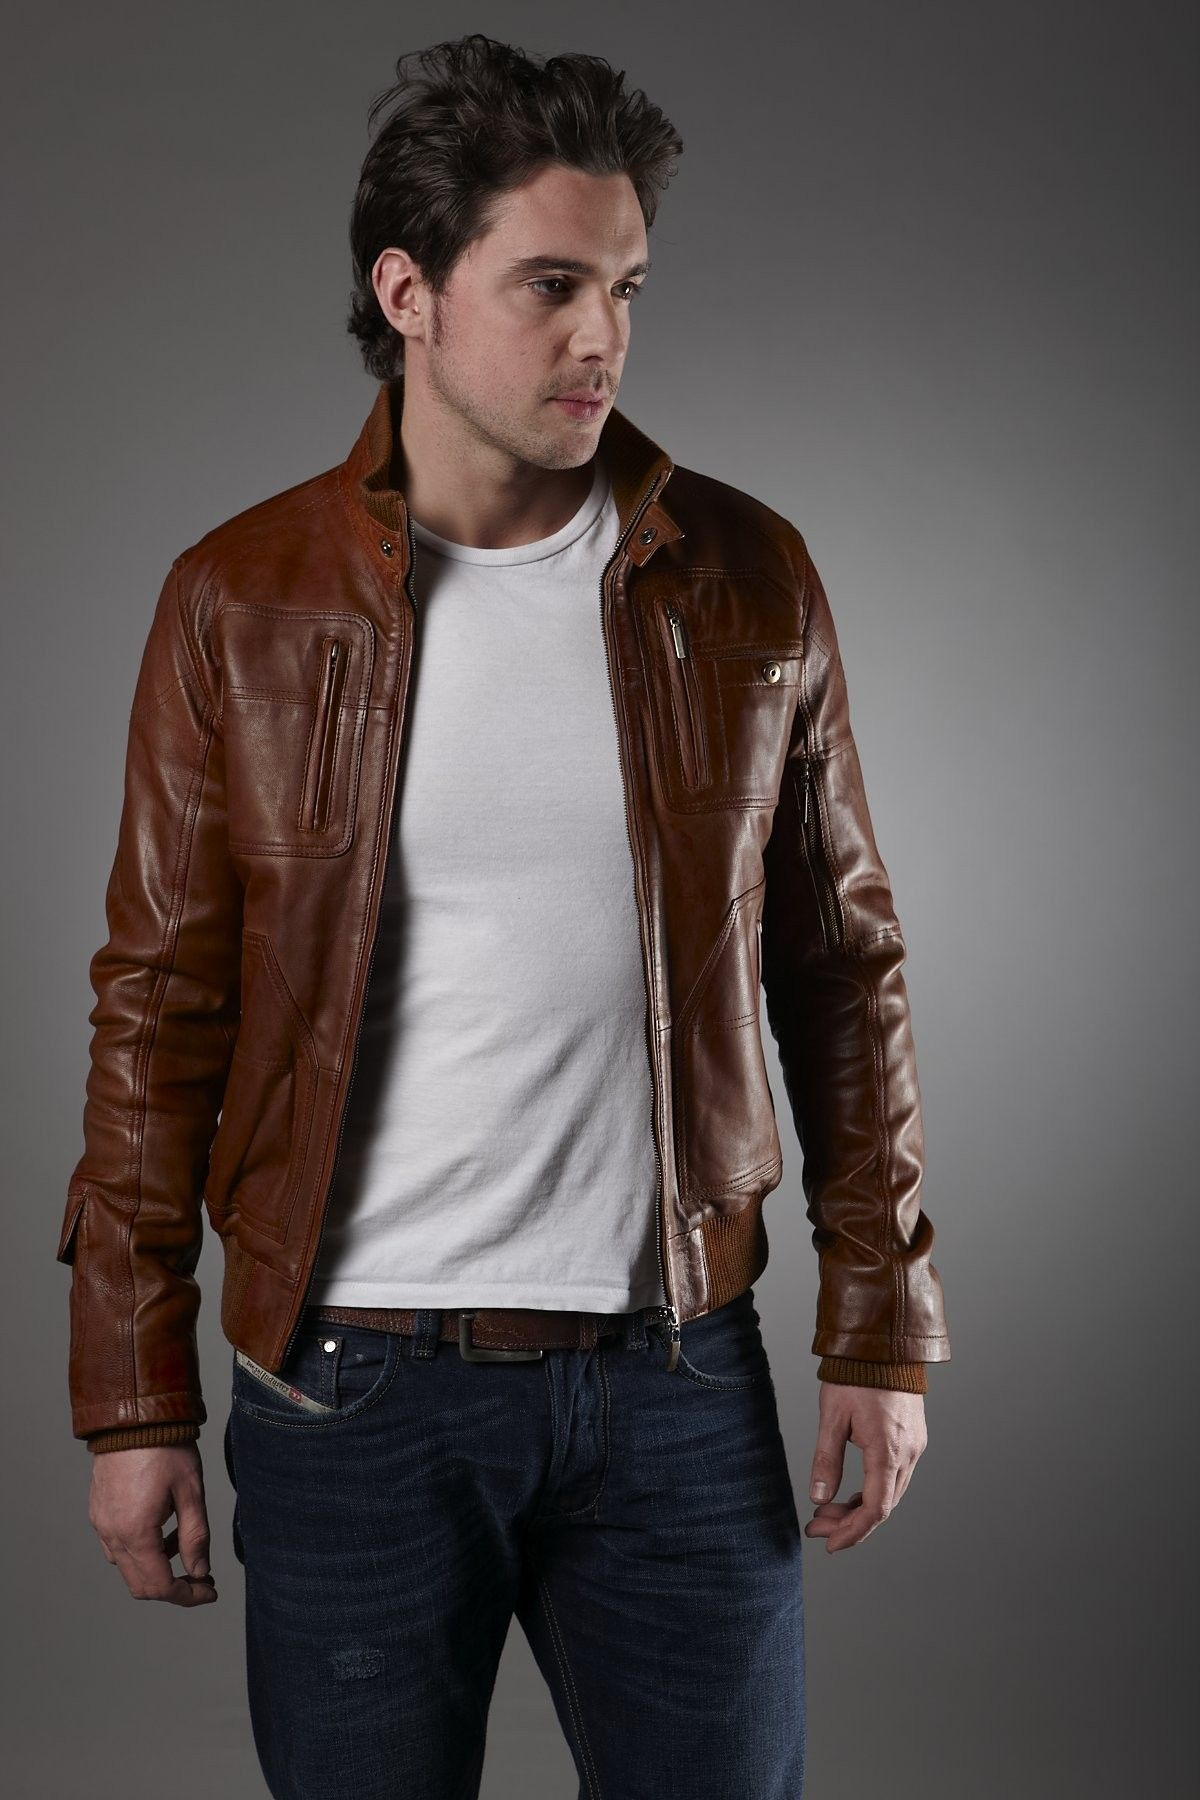 Men Leather jackets to fight against winter breeze | Leather ...